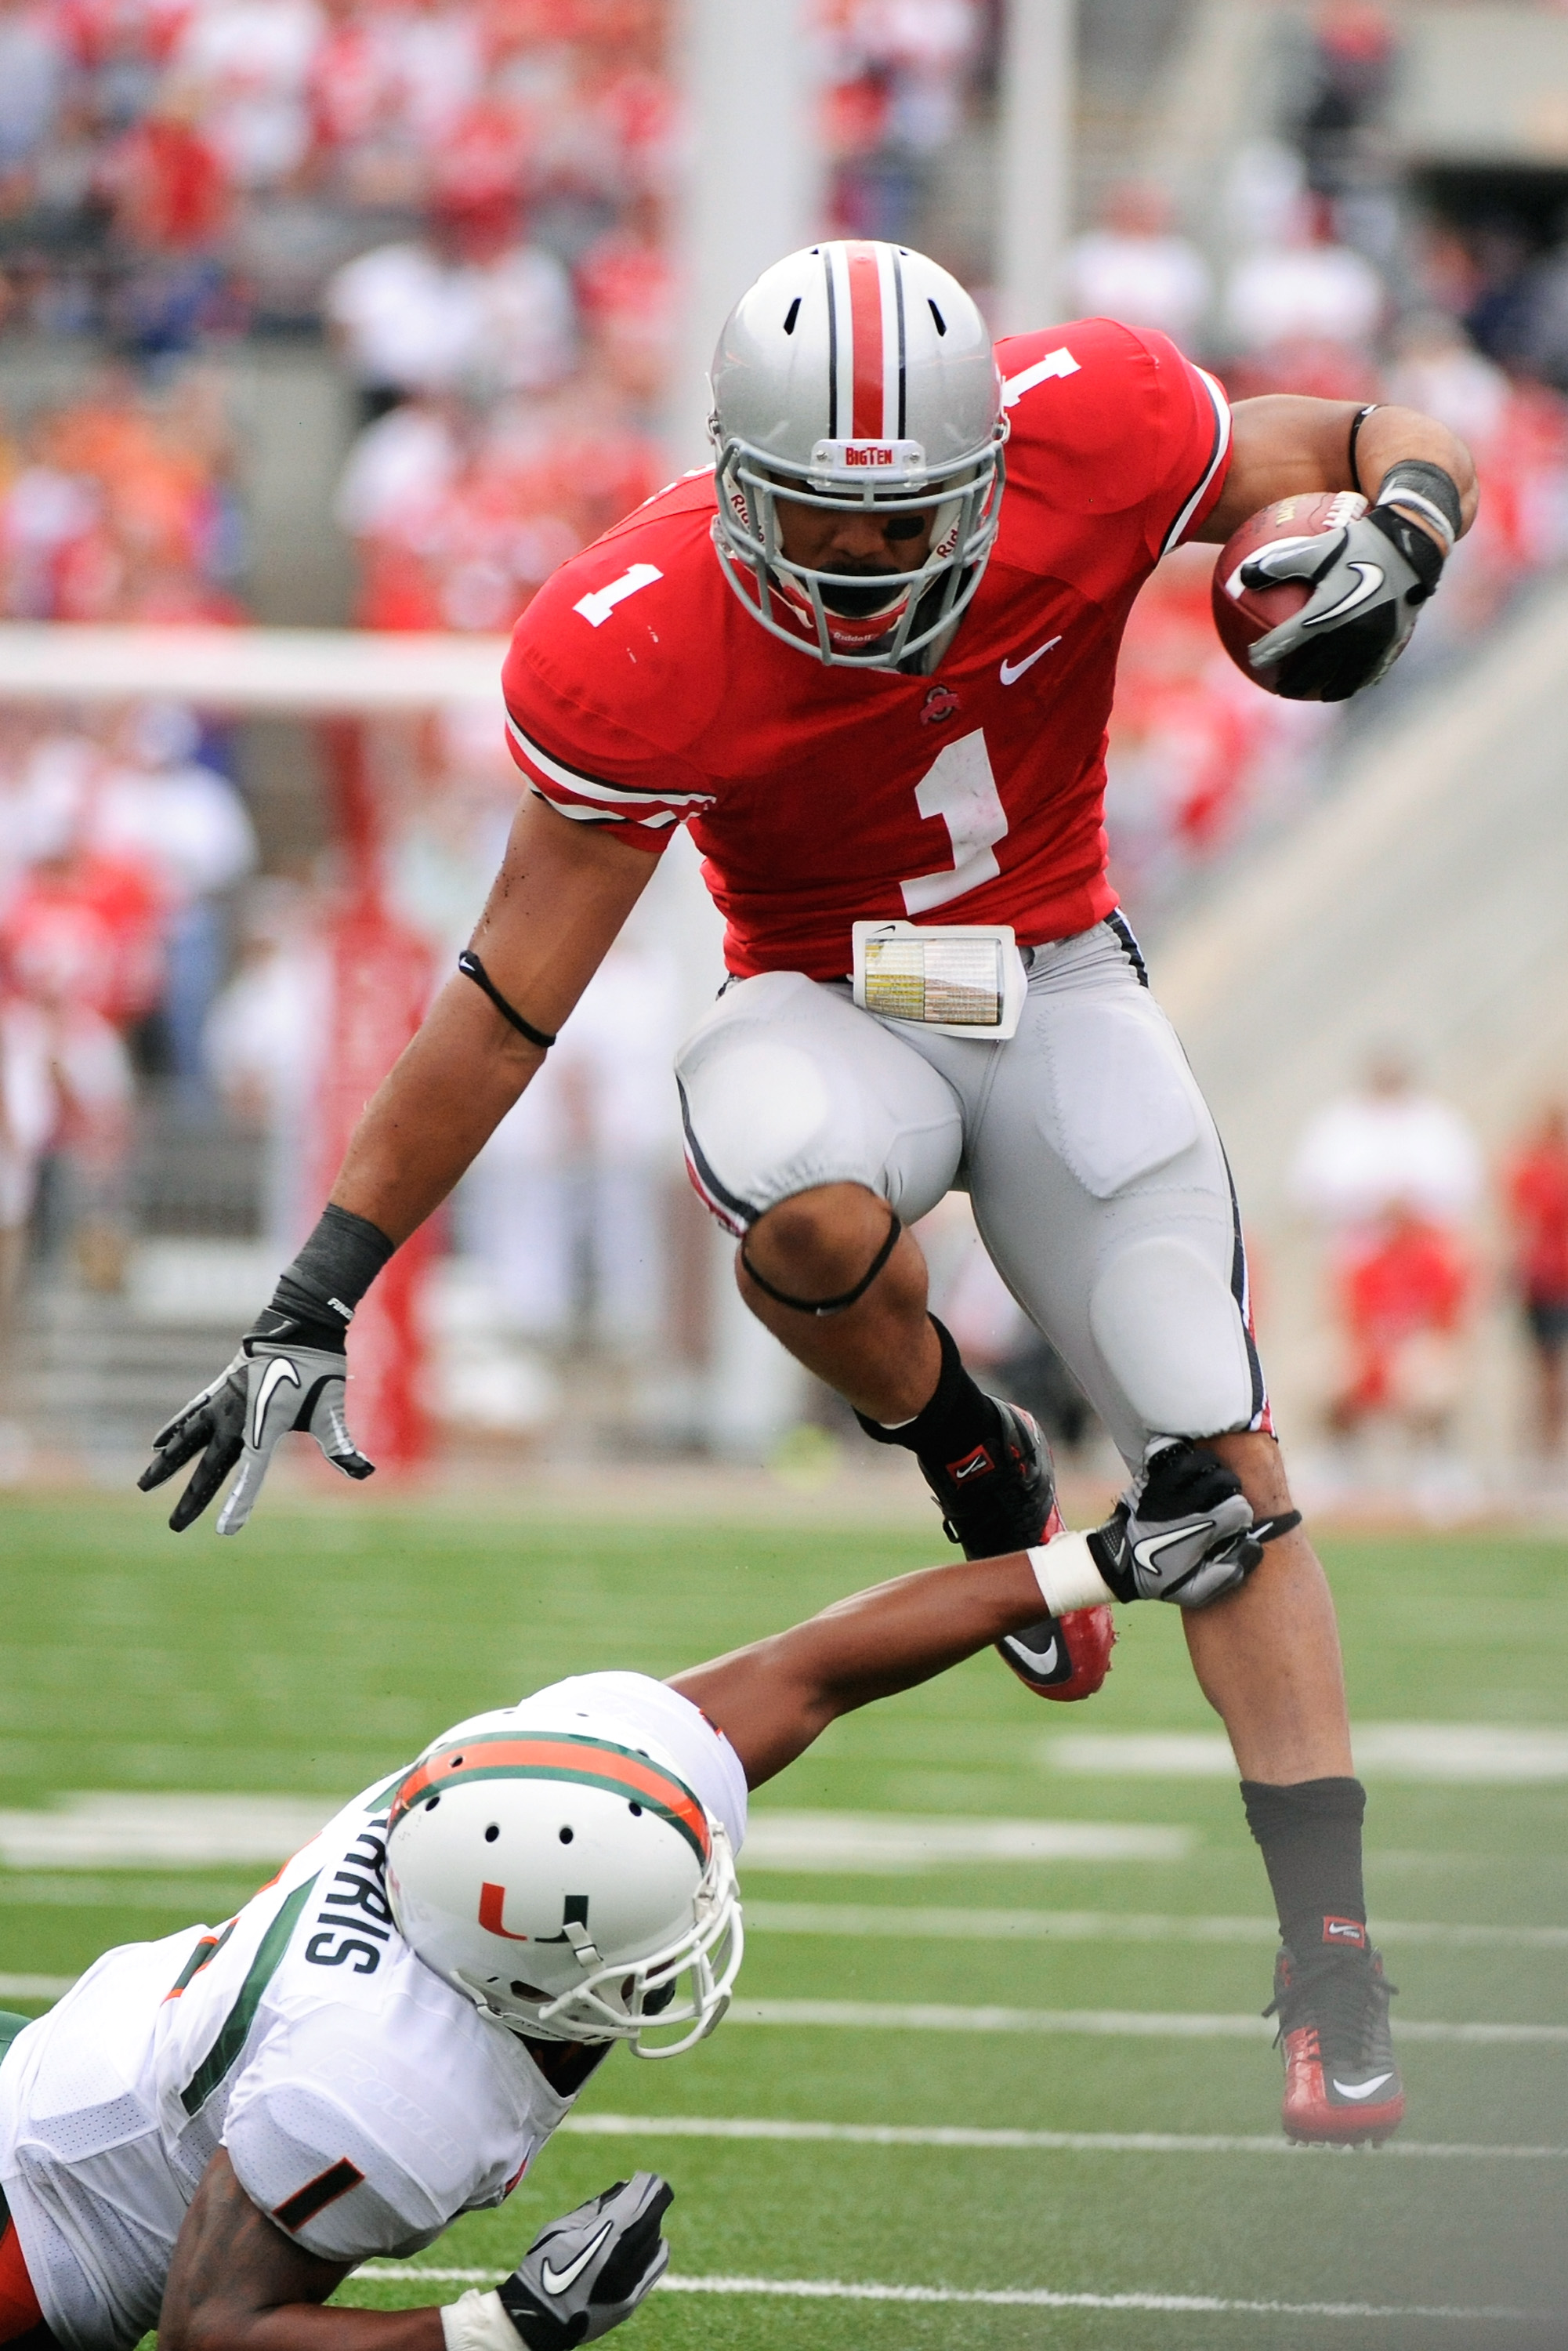 COLUMBUS, OH - SEPTEMBER 11:  Dan Herron #1 of the Ohio State Buckeyes leaps over the tackle attempt of Brandon Harris #1 of the Miami Hurricanes at Ohio Stadium on September 11, 2010 in Columbus, Ohio.  (Photo by Jamie Sabau/Getty Images)